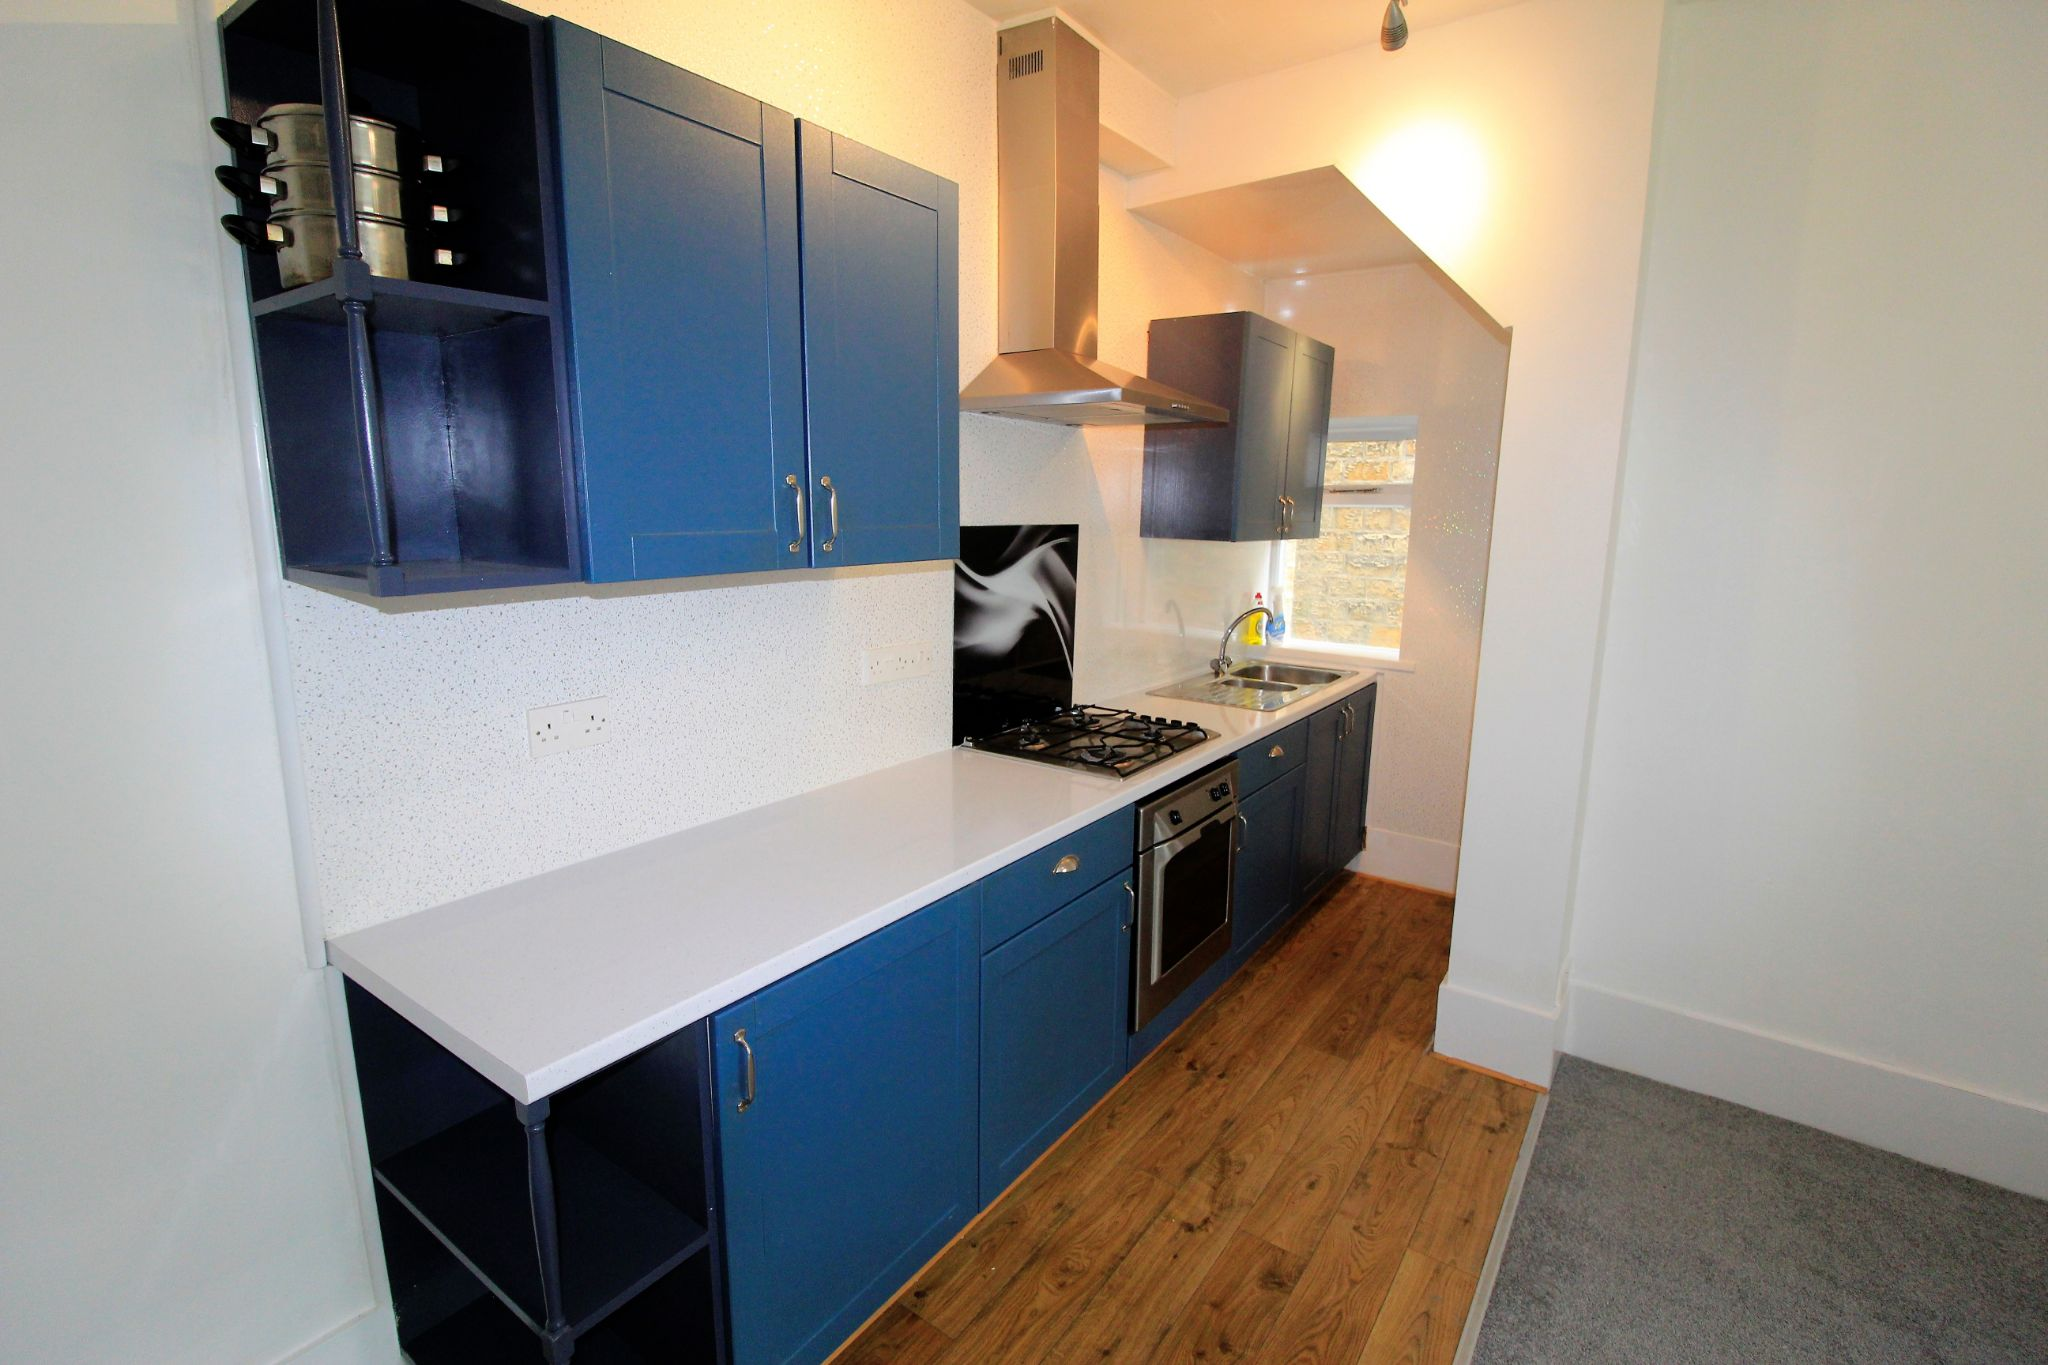 2 bedroom semi-detached house For Sale in Huddersfield - Kitchen area